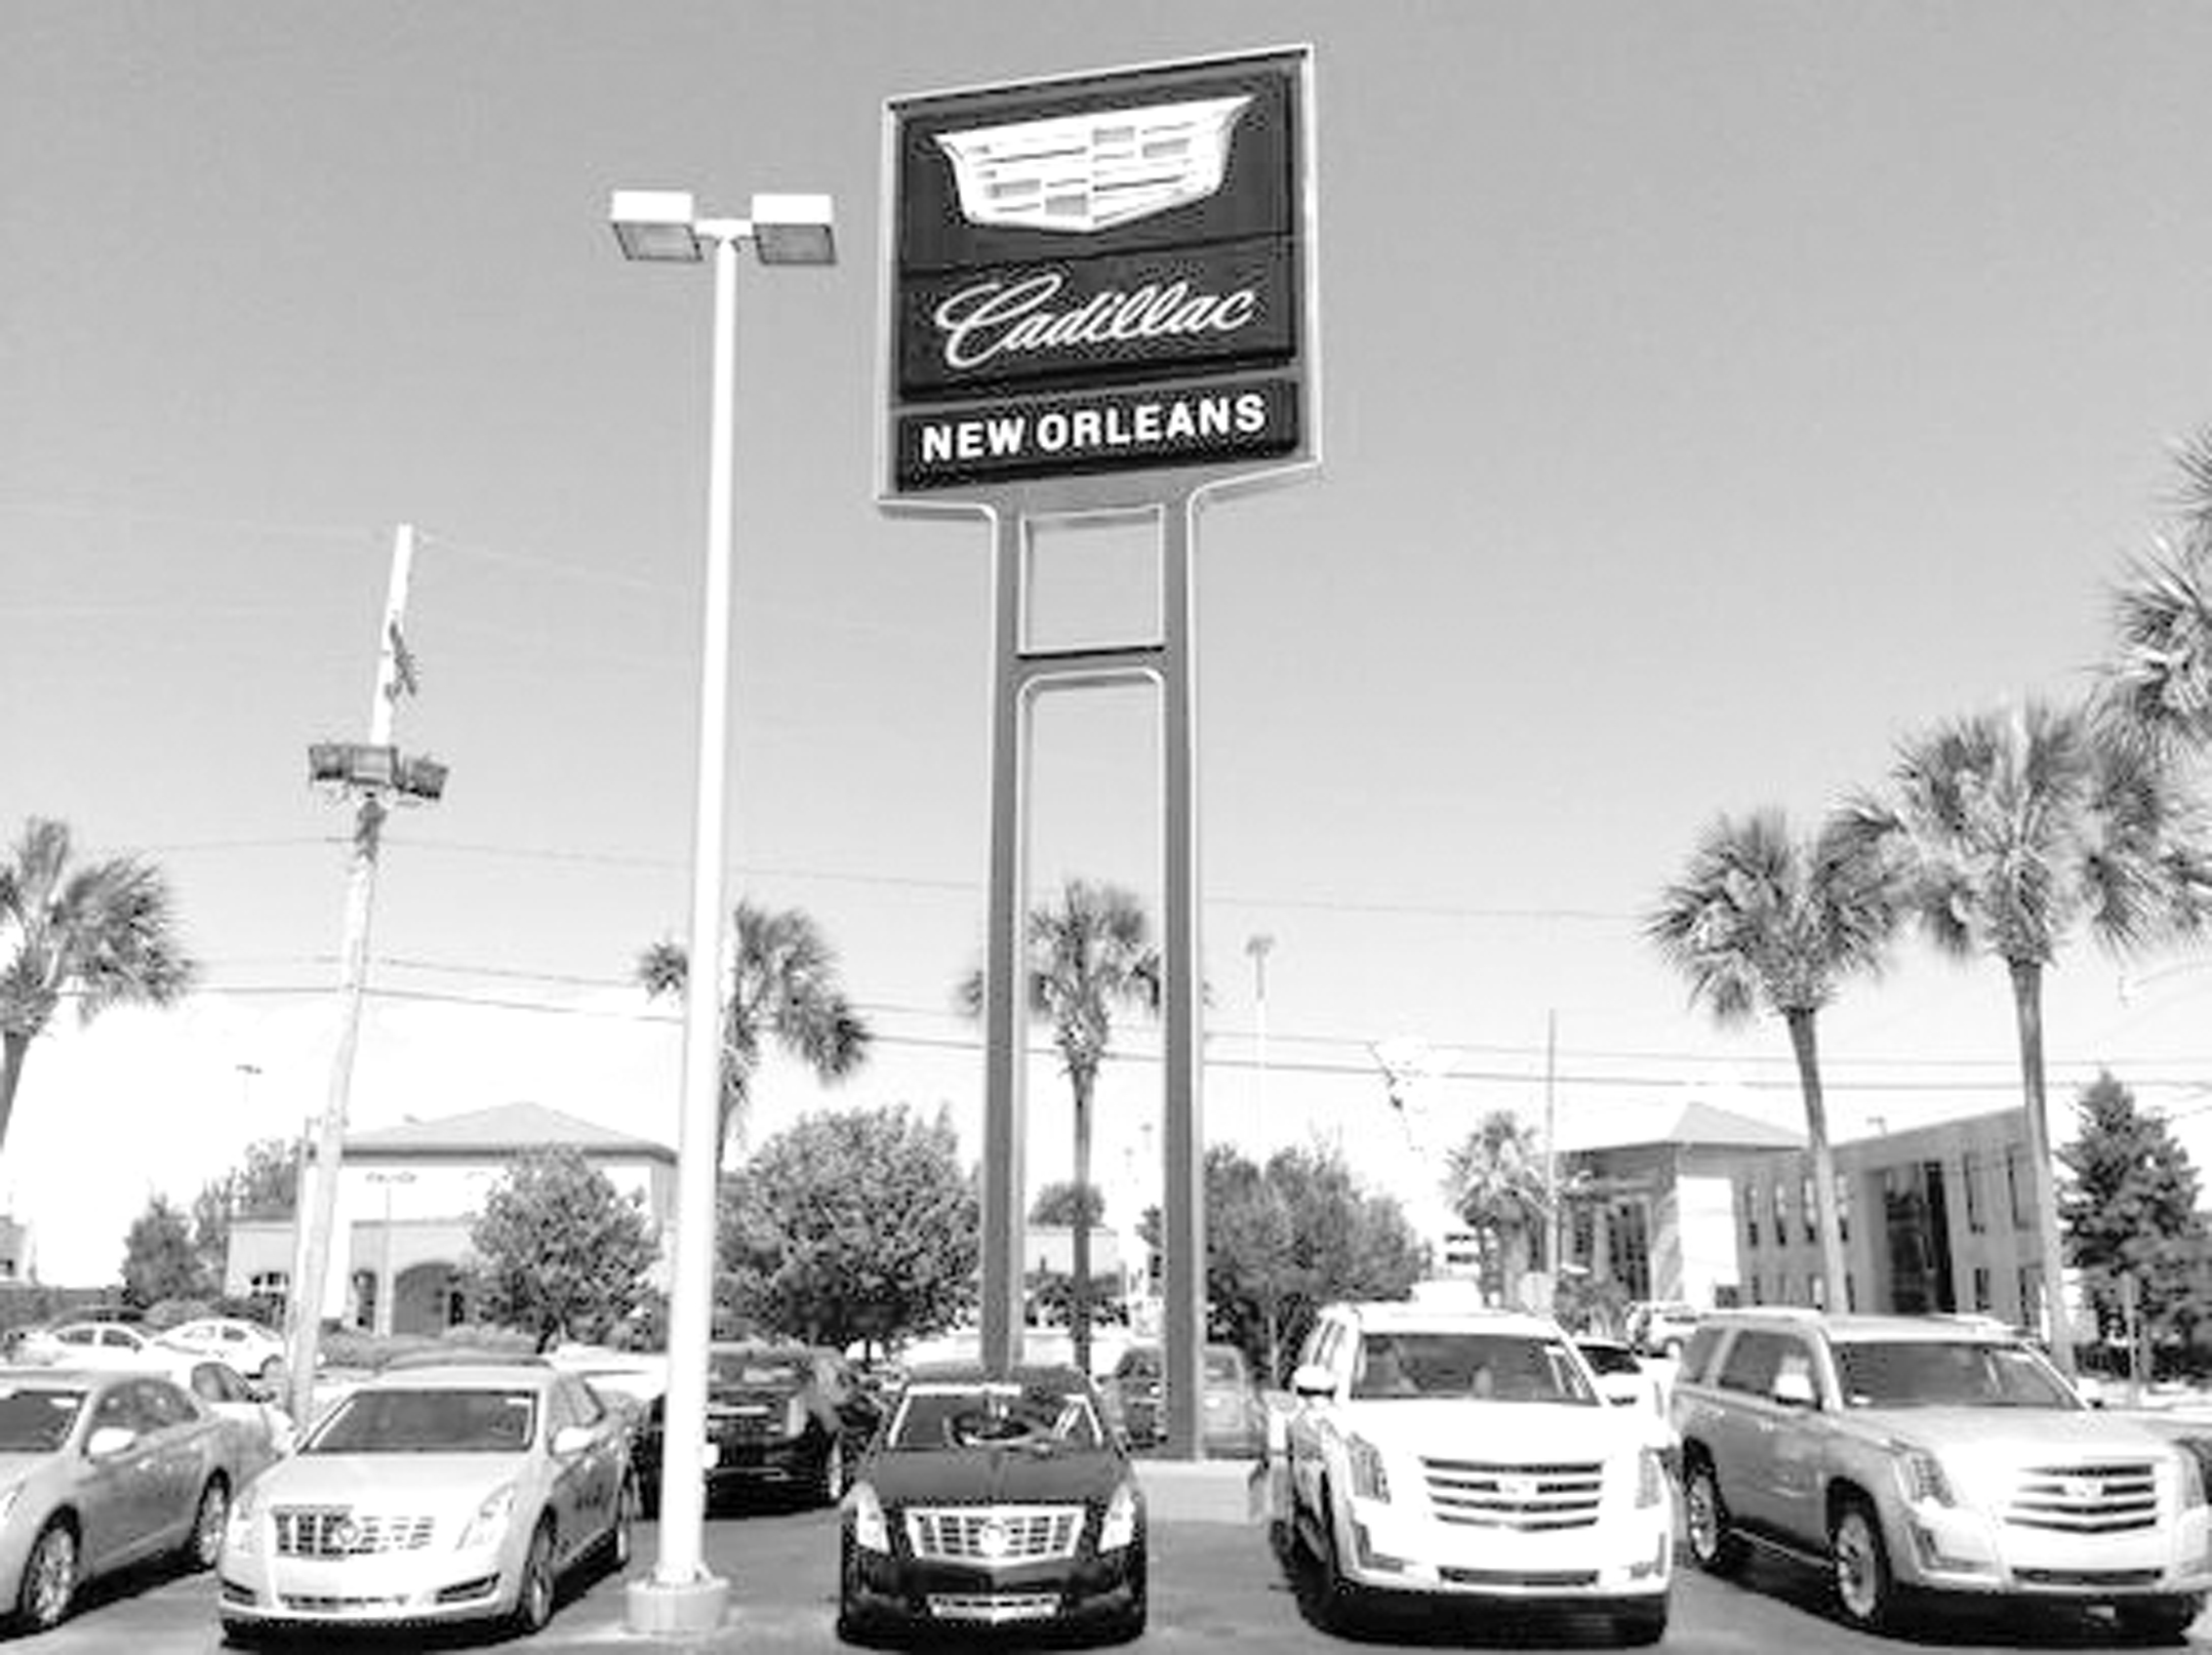 CadillacofNewOrleans New Orleans Multicultural News - Cadillac dealerships in louisiana